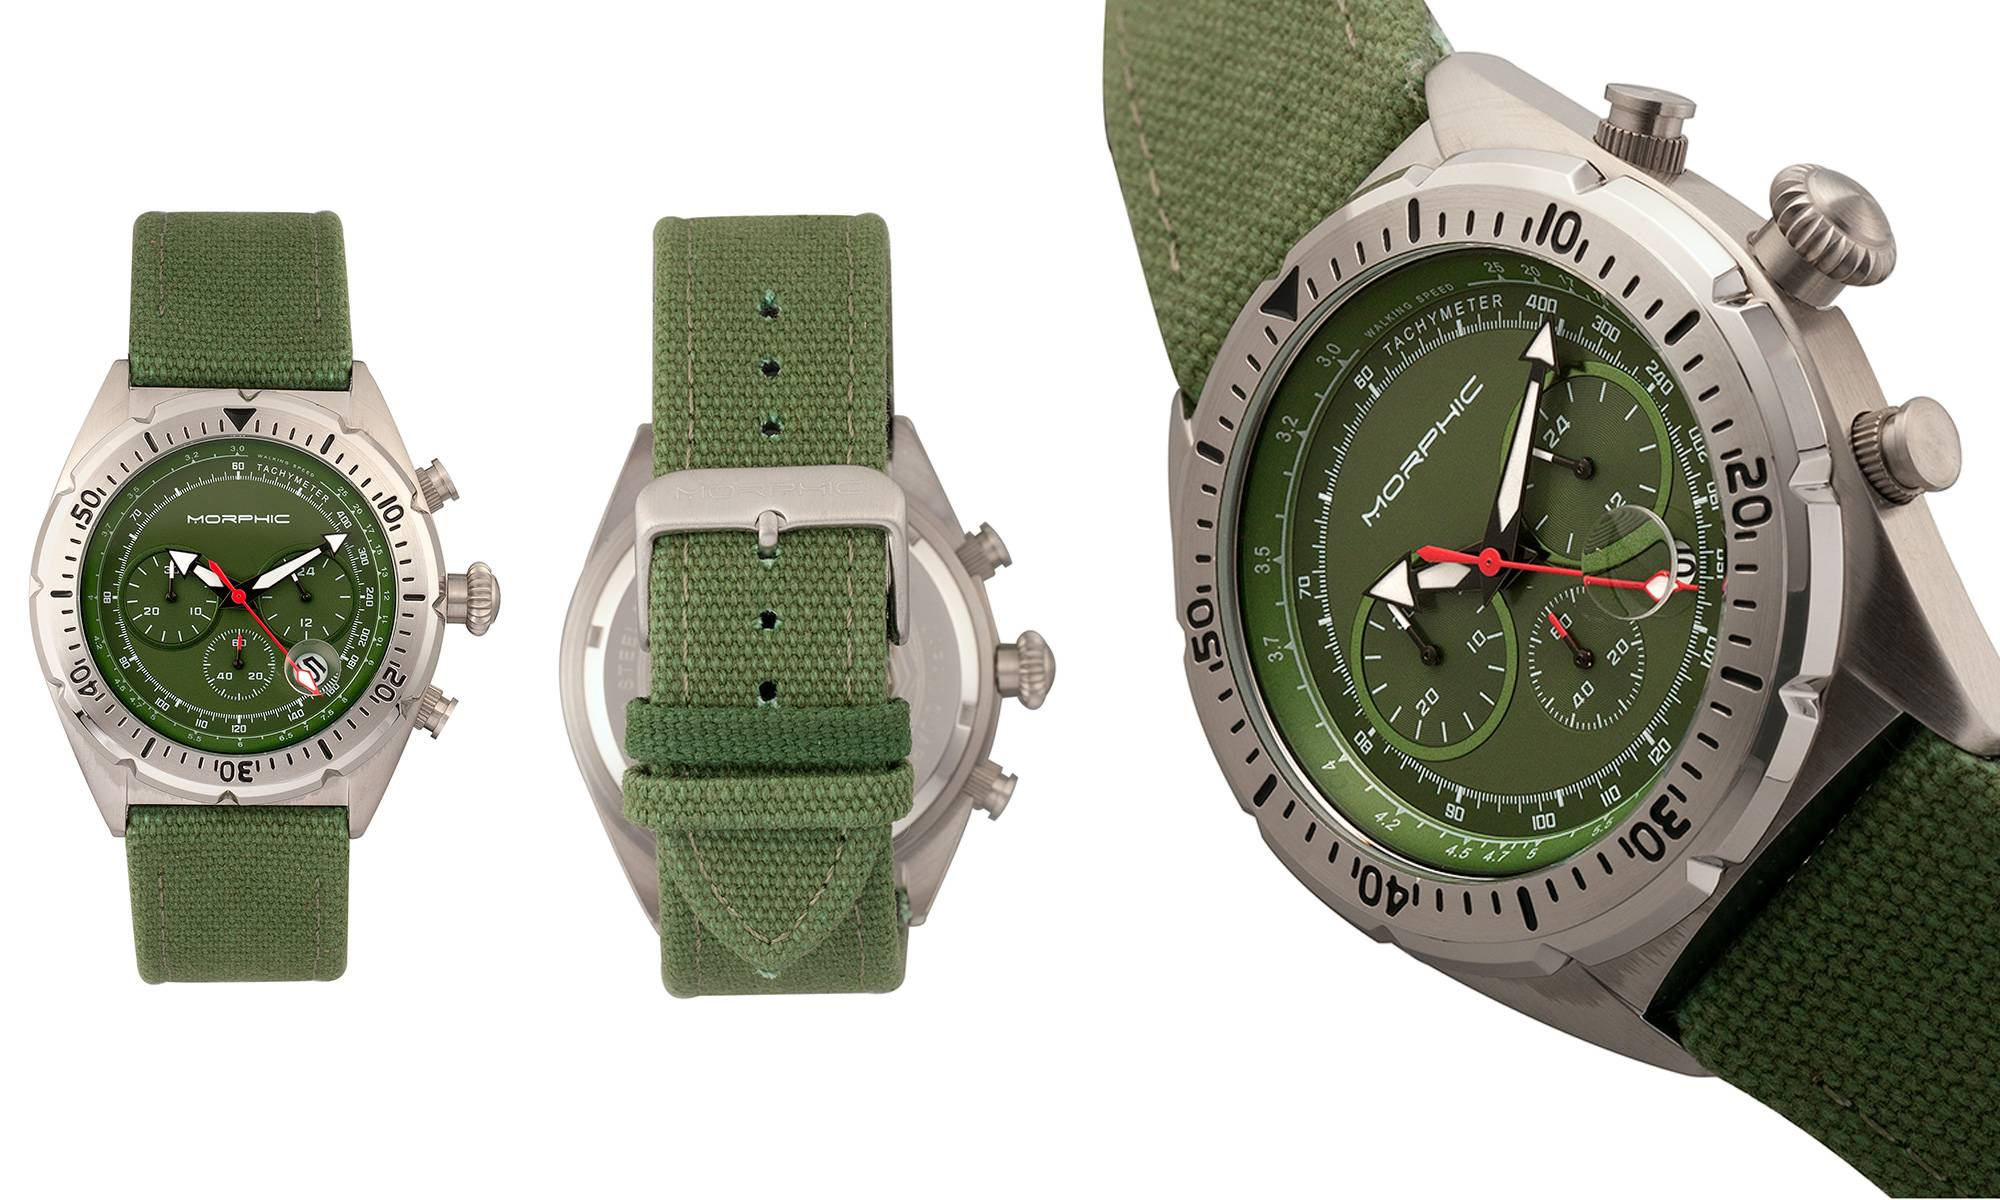 7a51c678c Morphic Men's Morphic M53 Series Watch: Silver-Coloured Case with Olive Dial